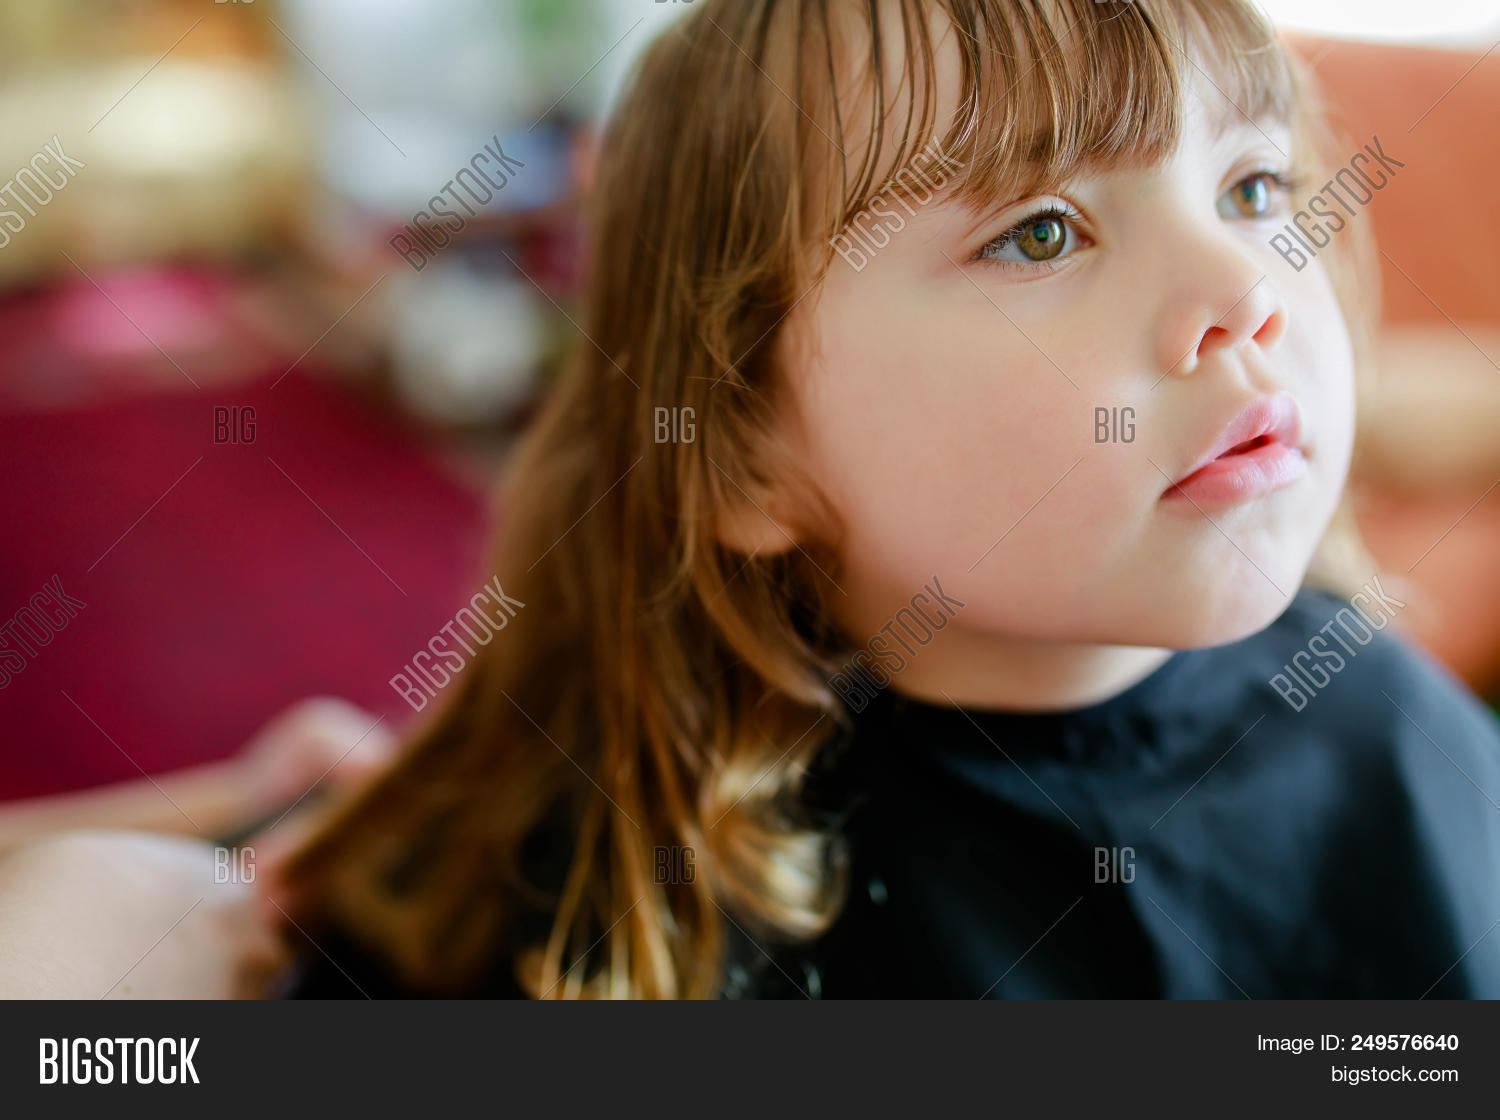 Little Blonde Curly Image Photo Free Trial Bigstock